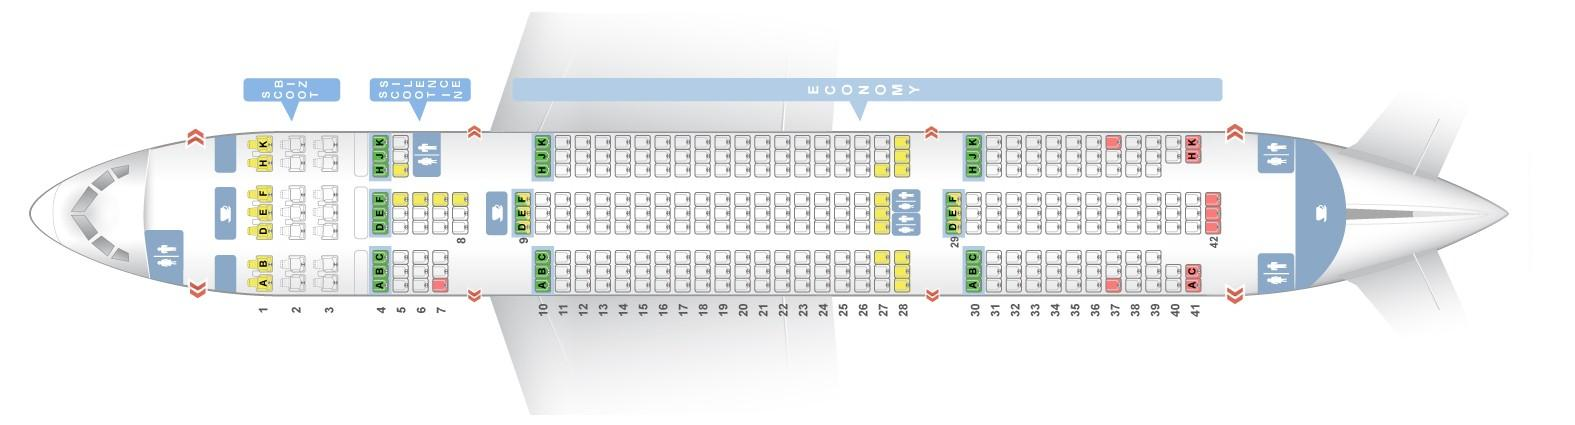 seat map boeing 787 8 scoot airlines best seats in the plane